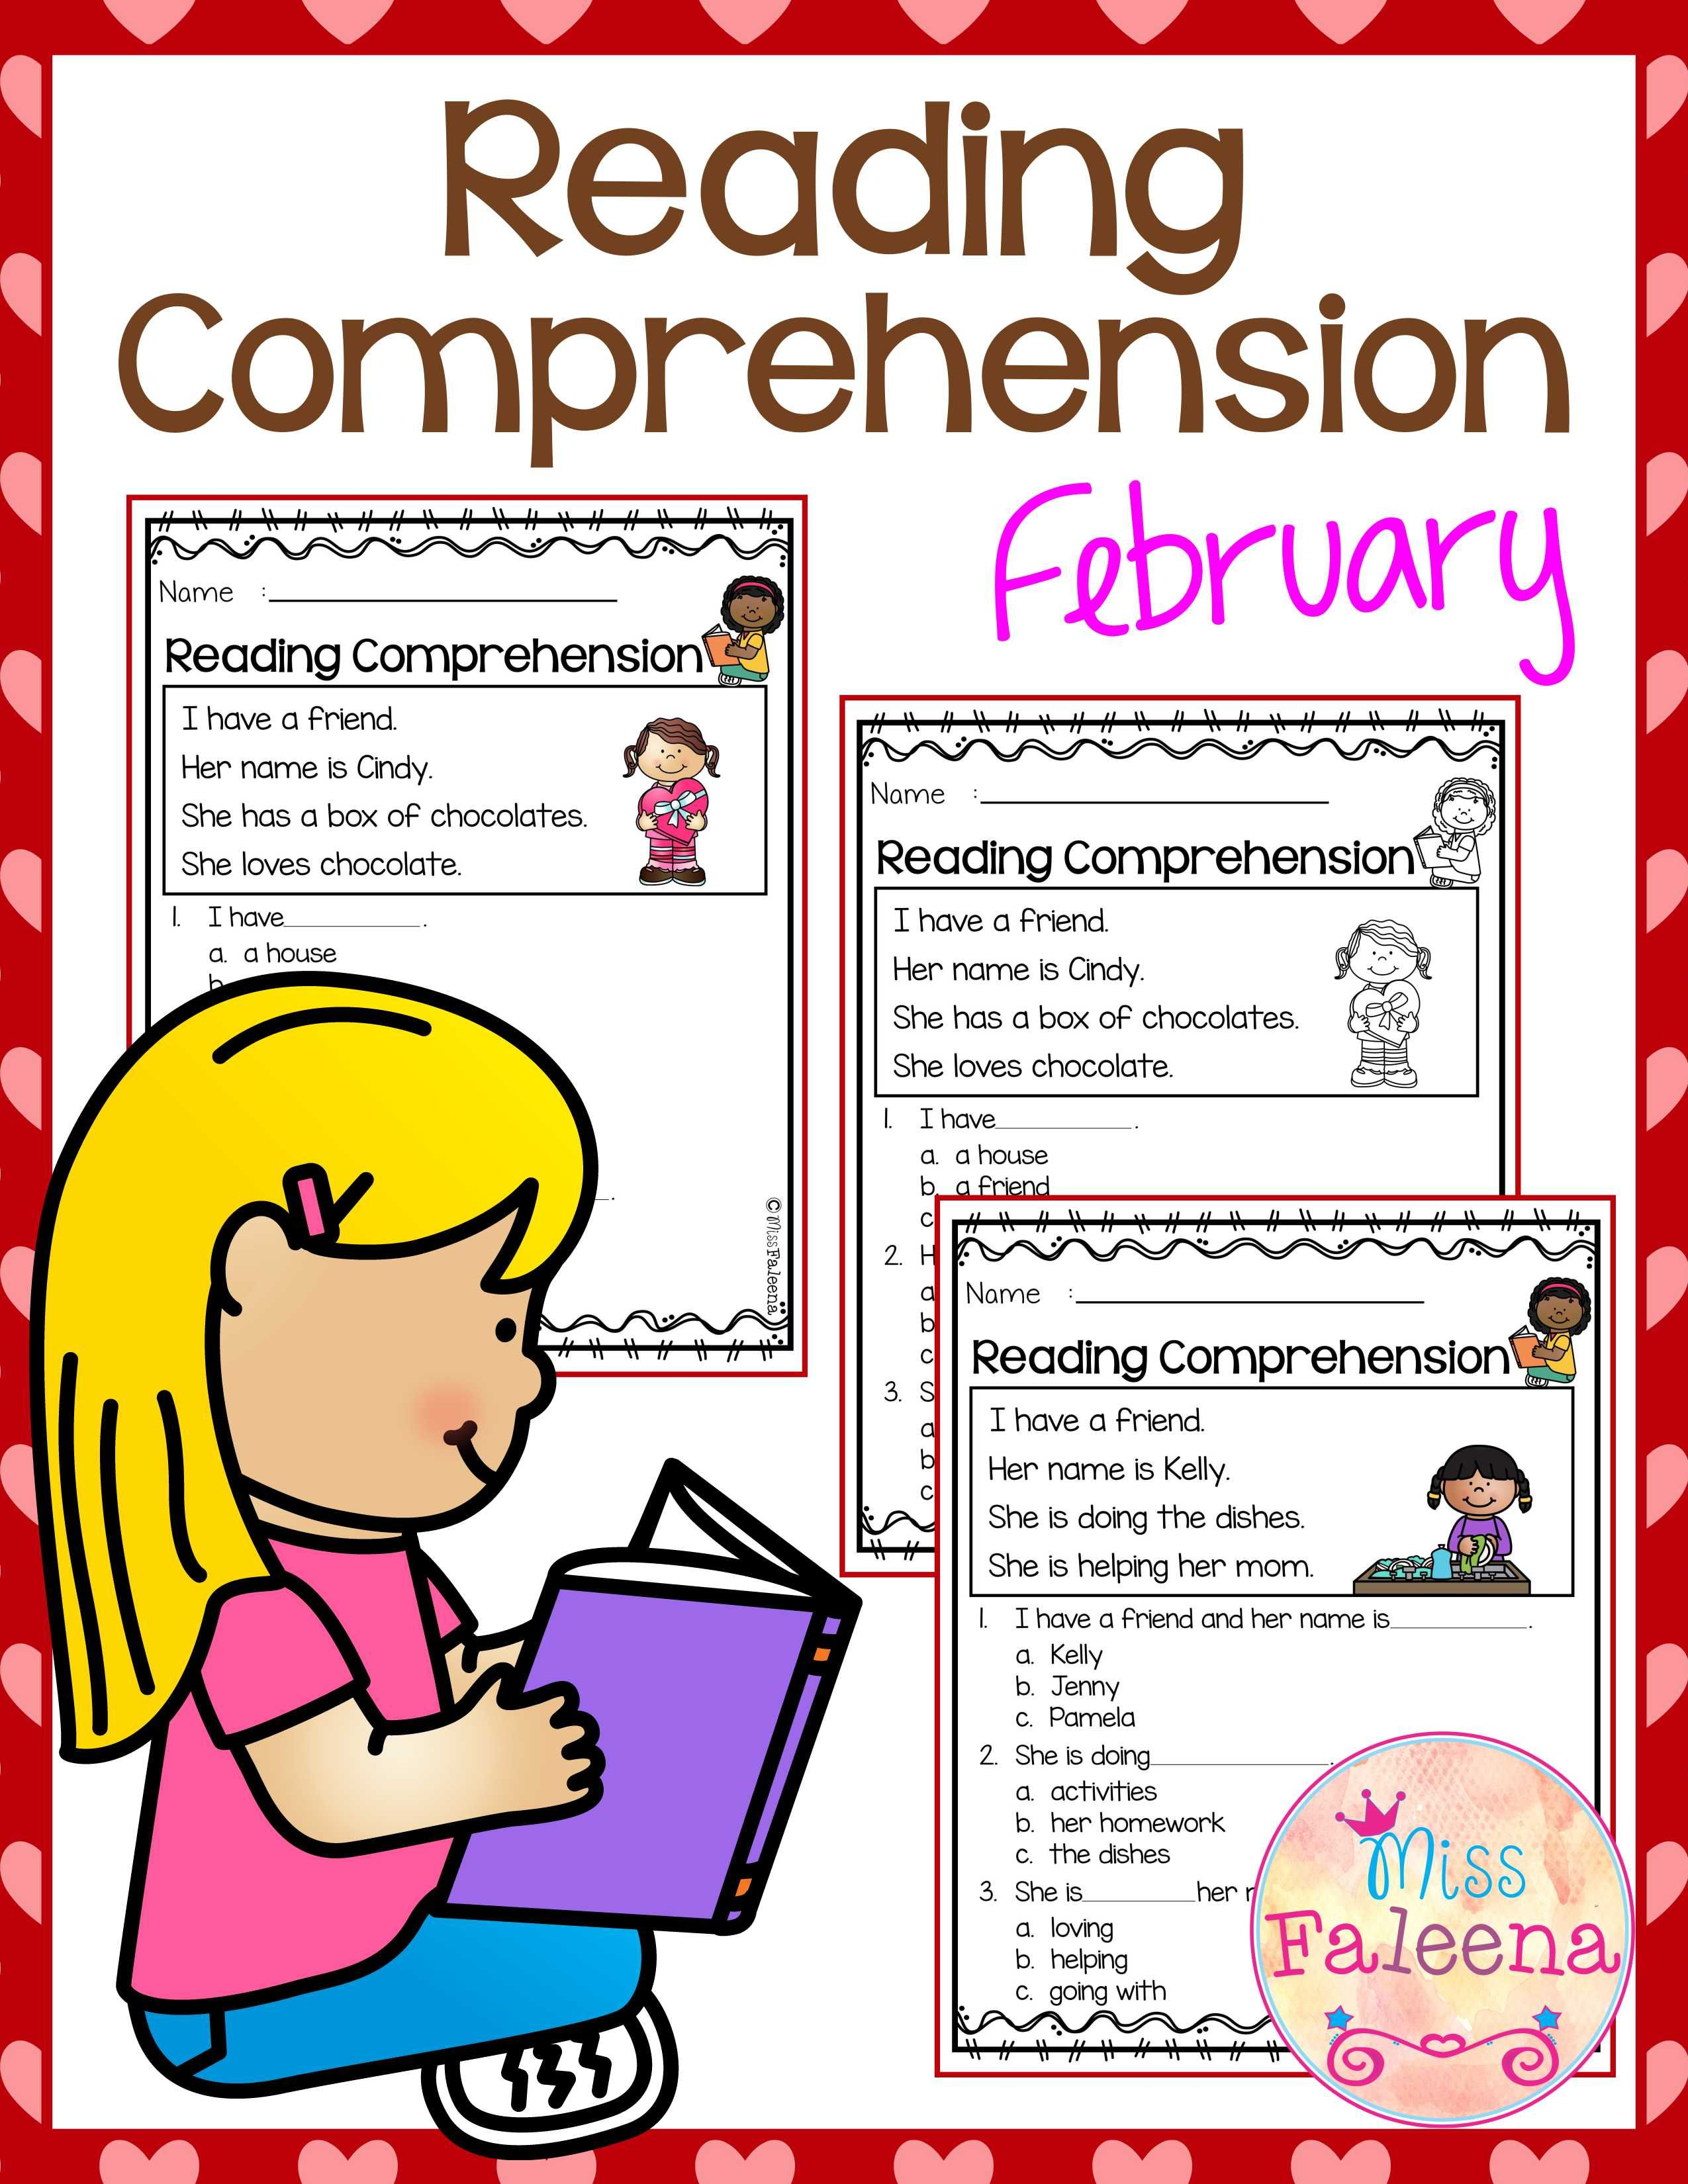 February Reading Comprehension